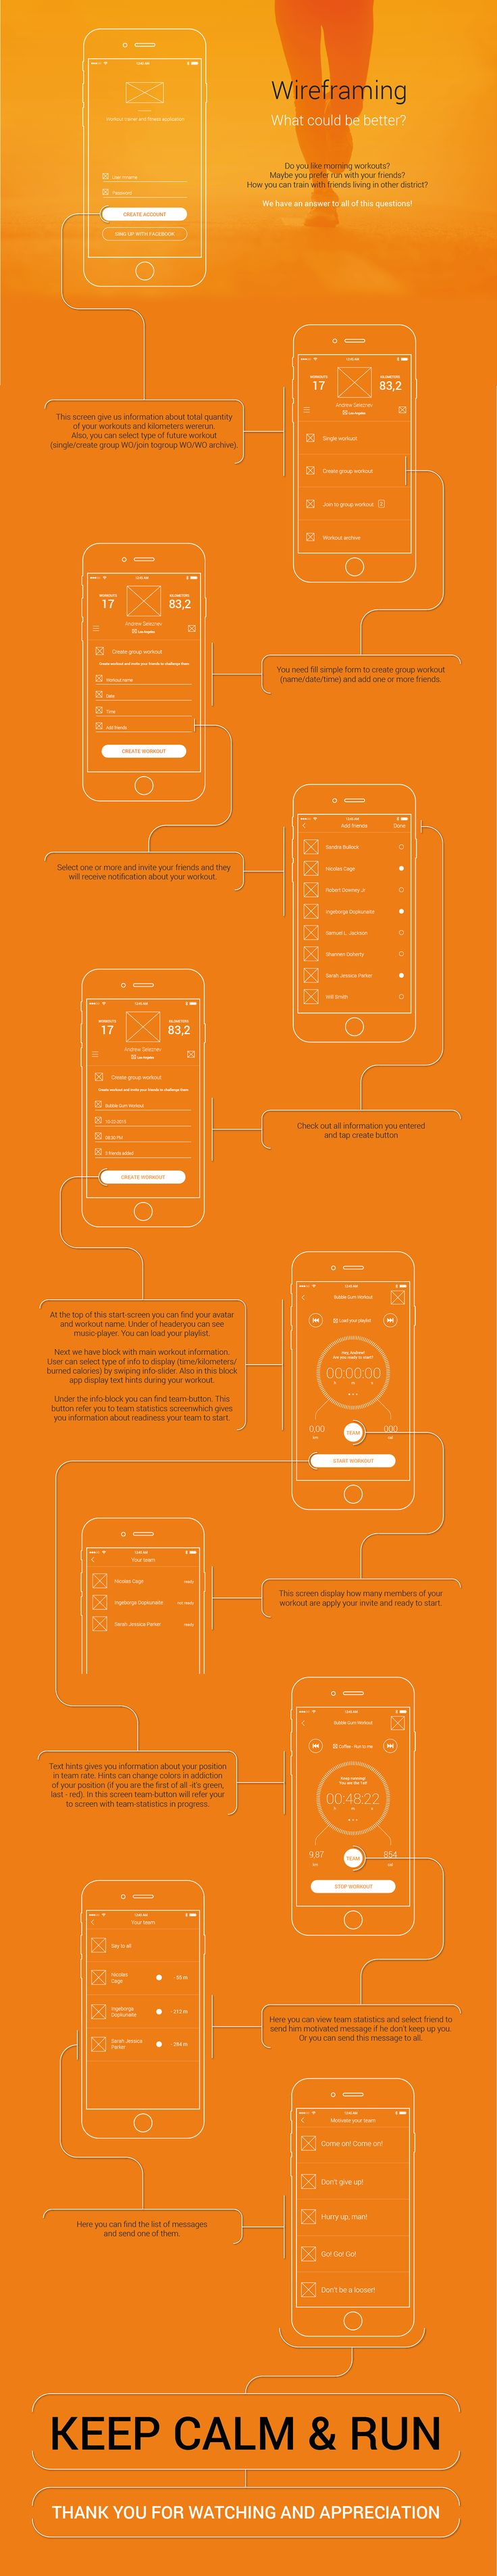 UX wireframing of fitness tracker.UI coming soon.